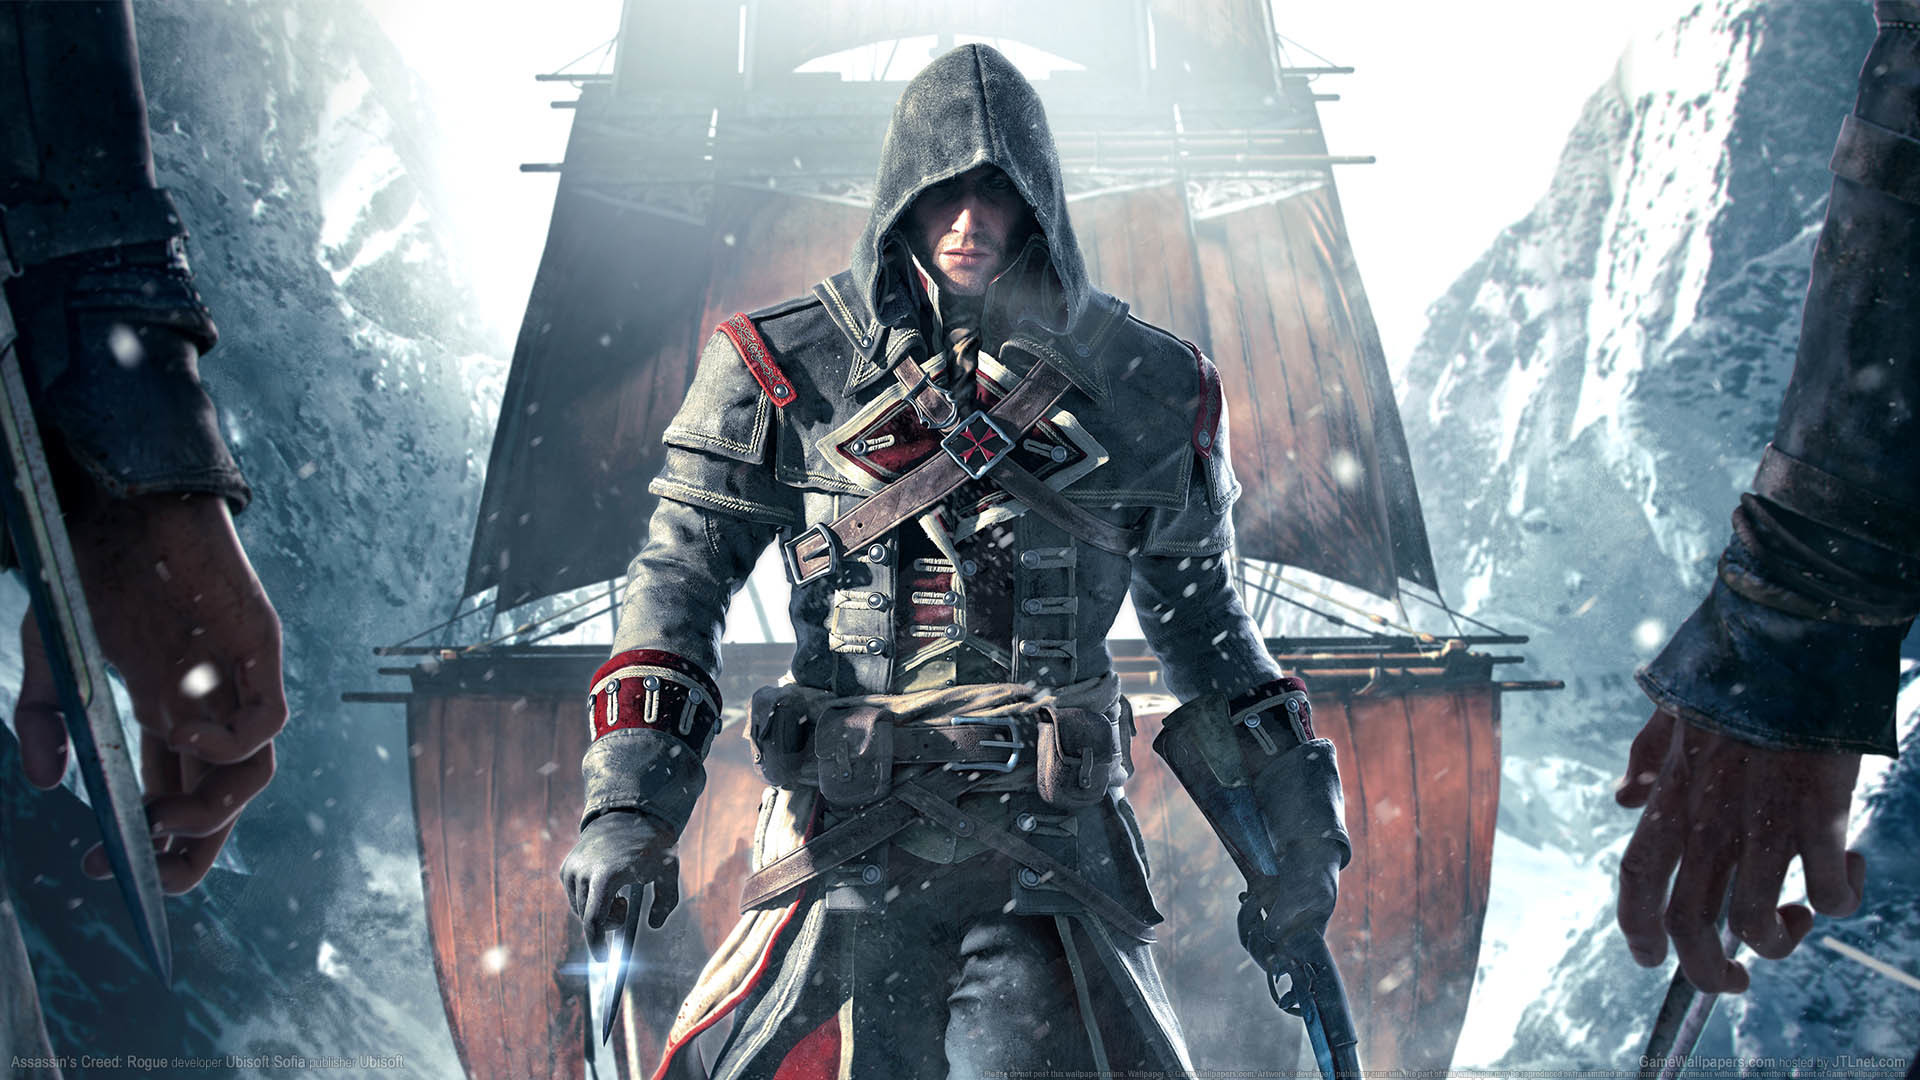 1920x1080 ... Assassin's Creed: Rogue wallpaper or background 01